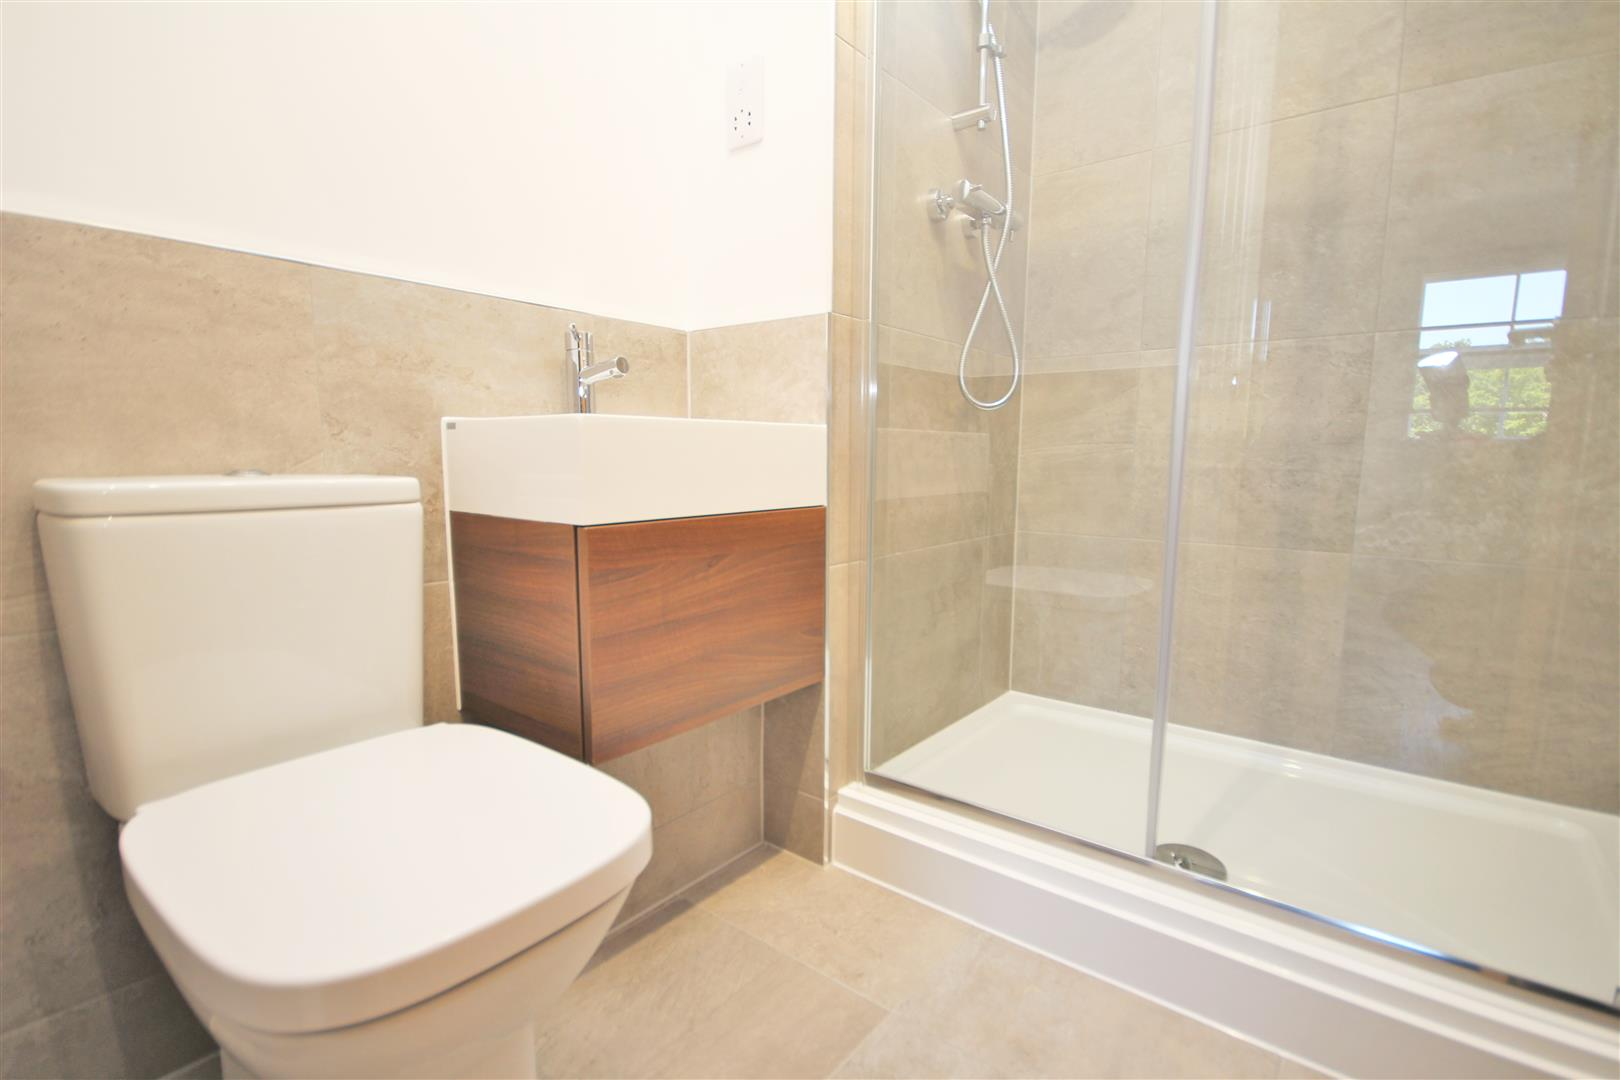 2 bed Flat to rent - (Property Image 5)